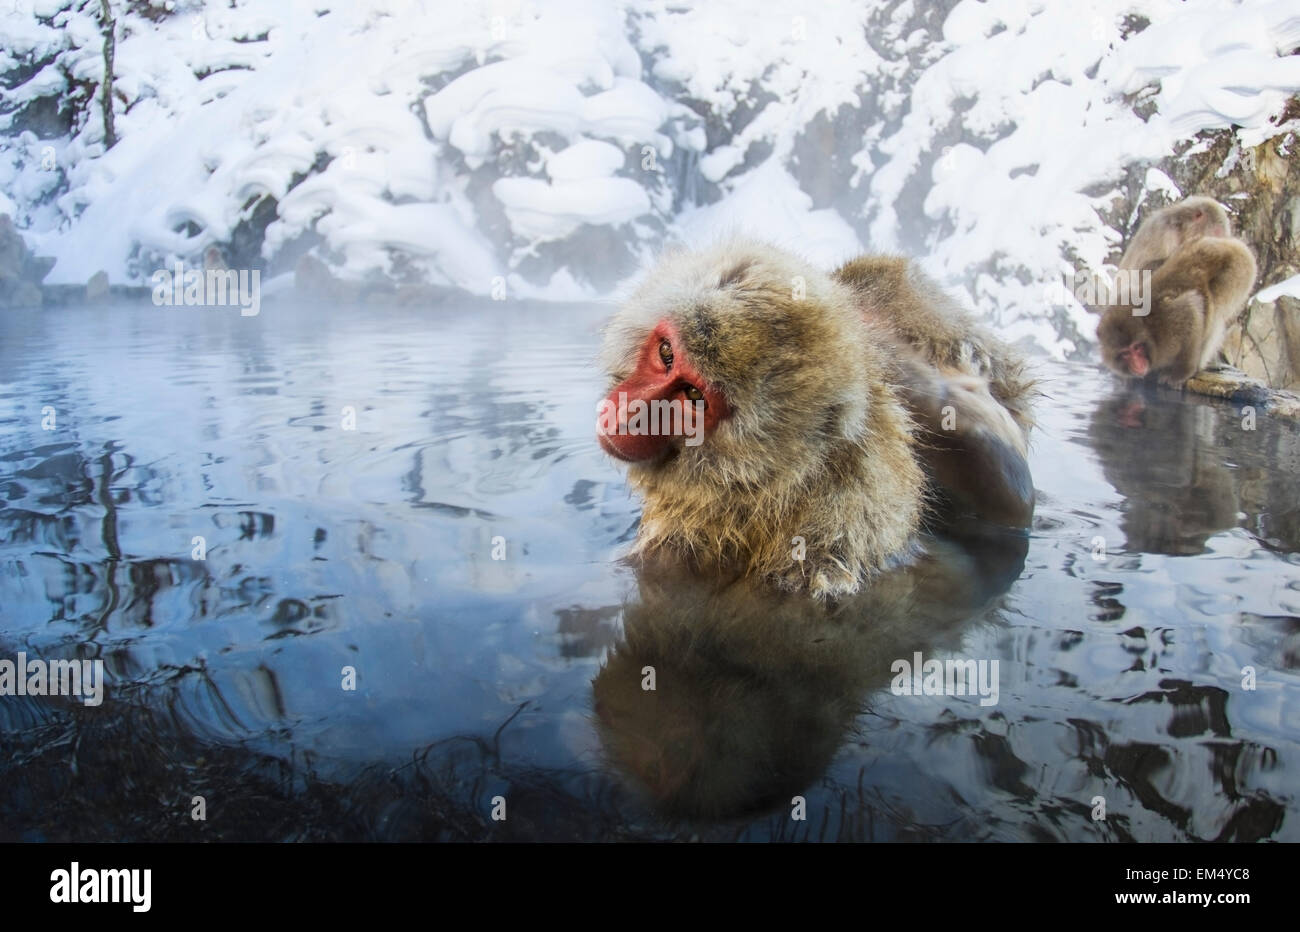 Japanese Macaque Monkey Soaking In Stock Photos & Japanese Macaque ...